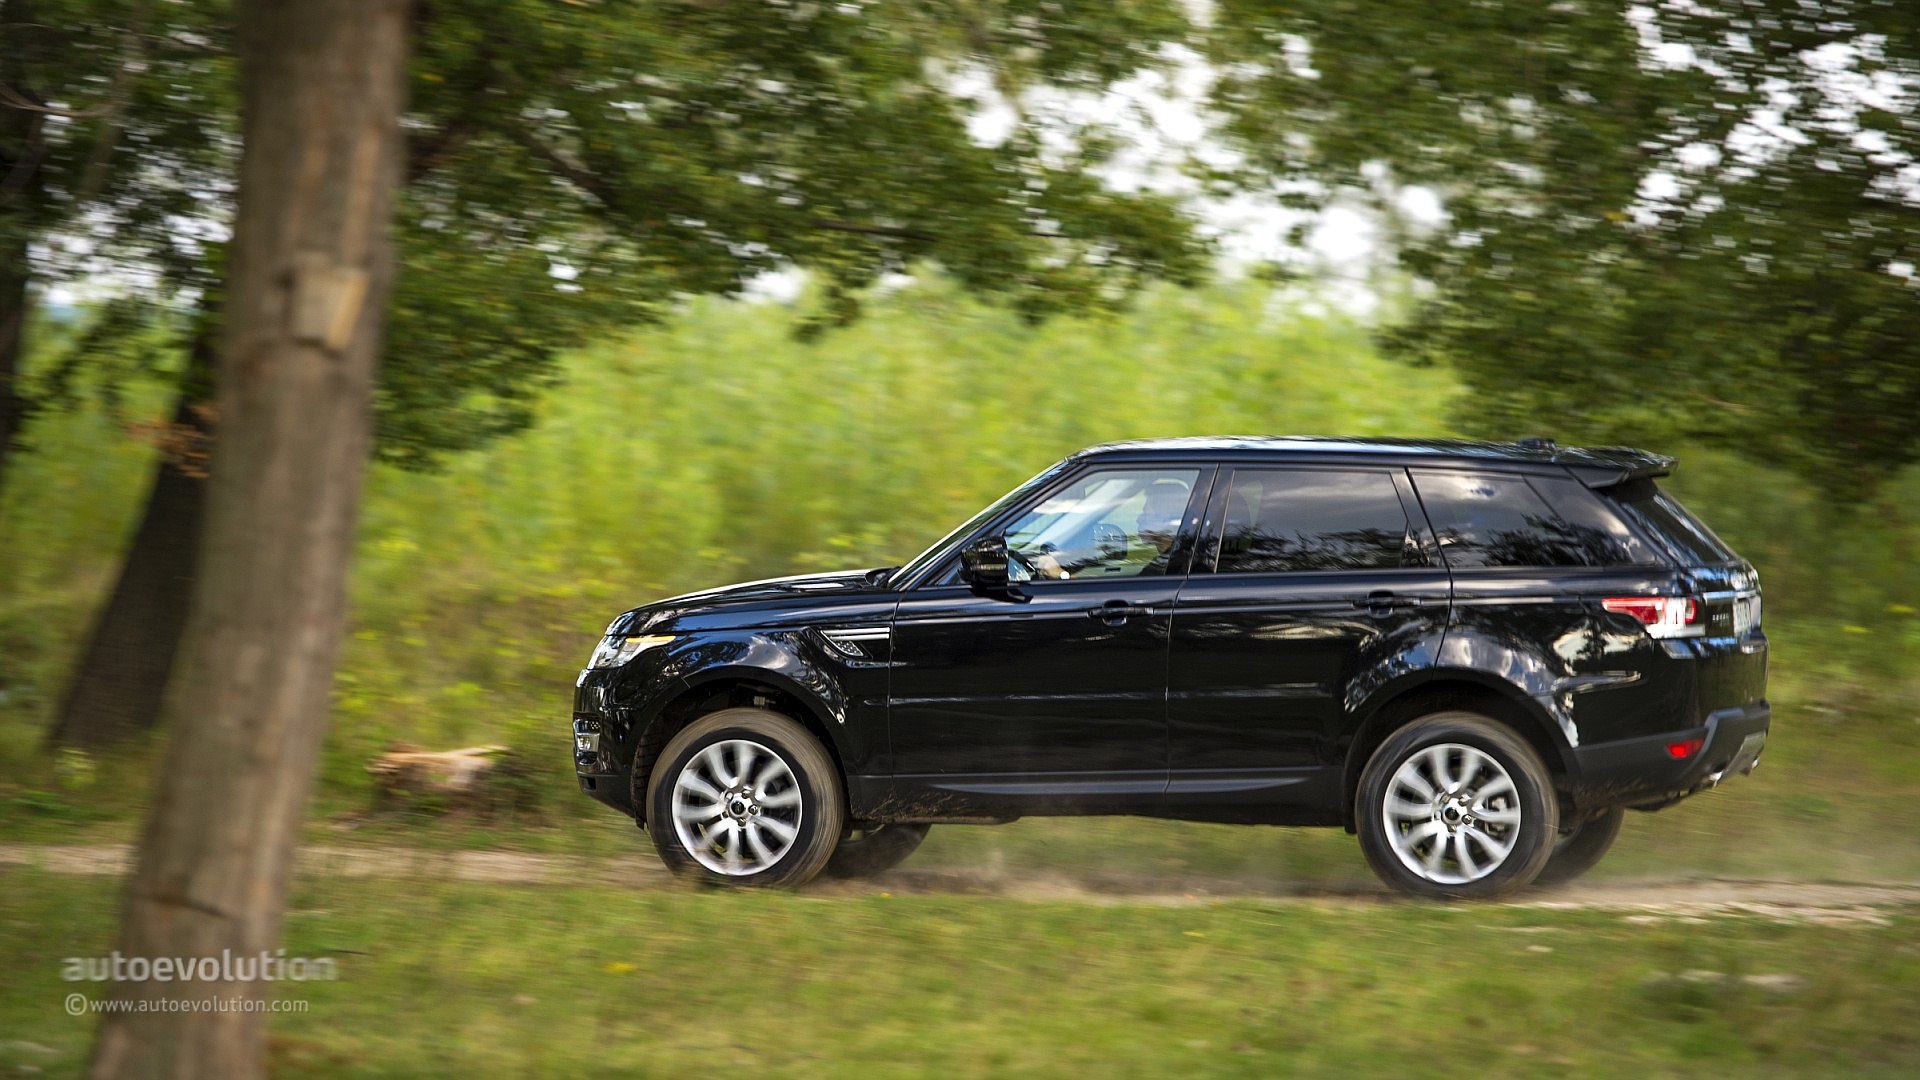 2014 Range Rover Sport Review Page 2 autoevolution